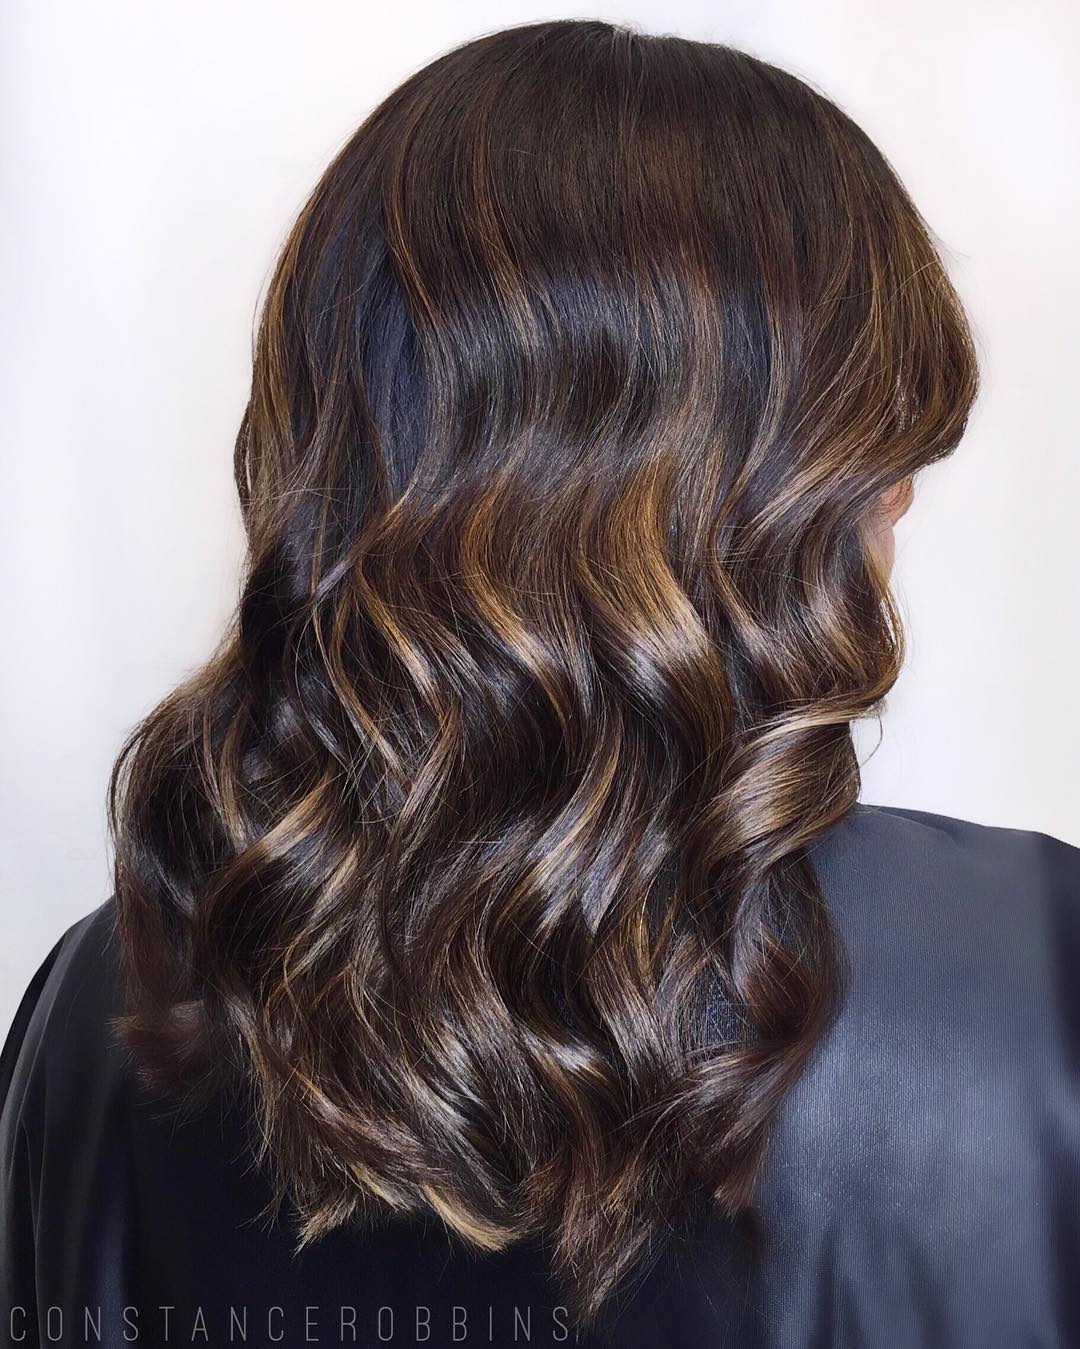 Black Hair With Golden Brown Highlights